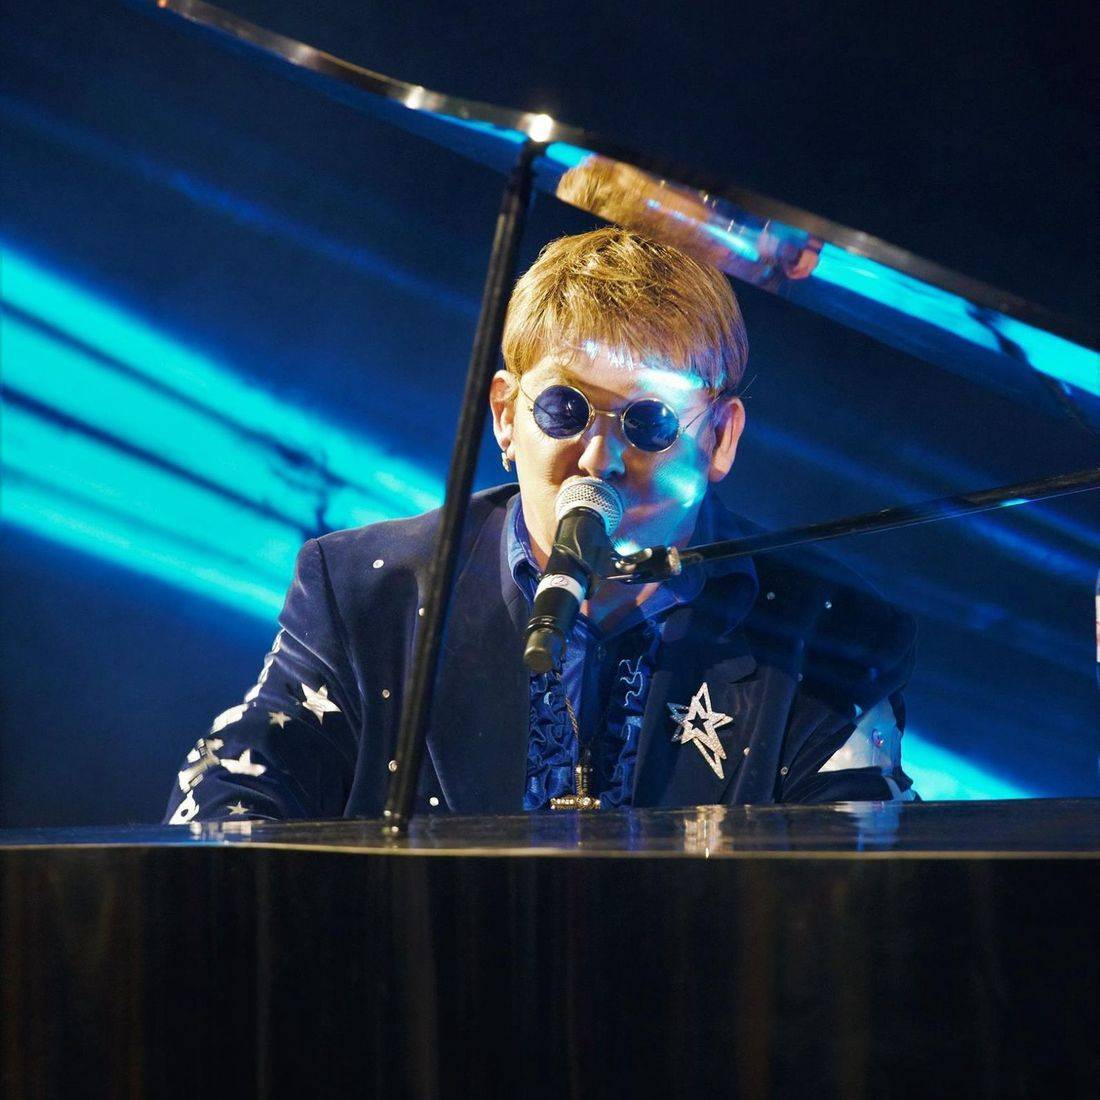 Elton John Tribute act  Andy Crosbie  Rocketman on tour ~